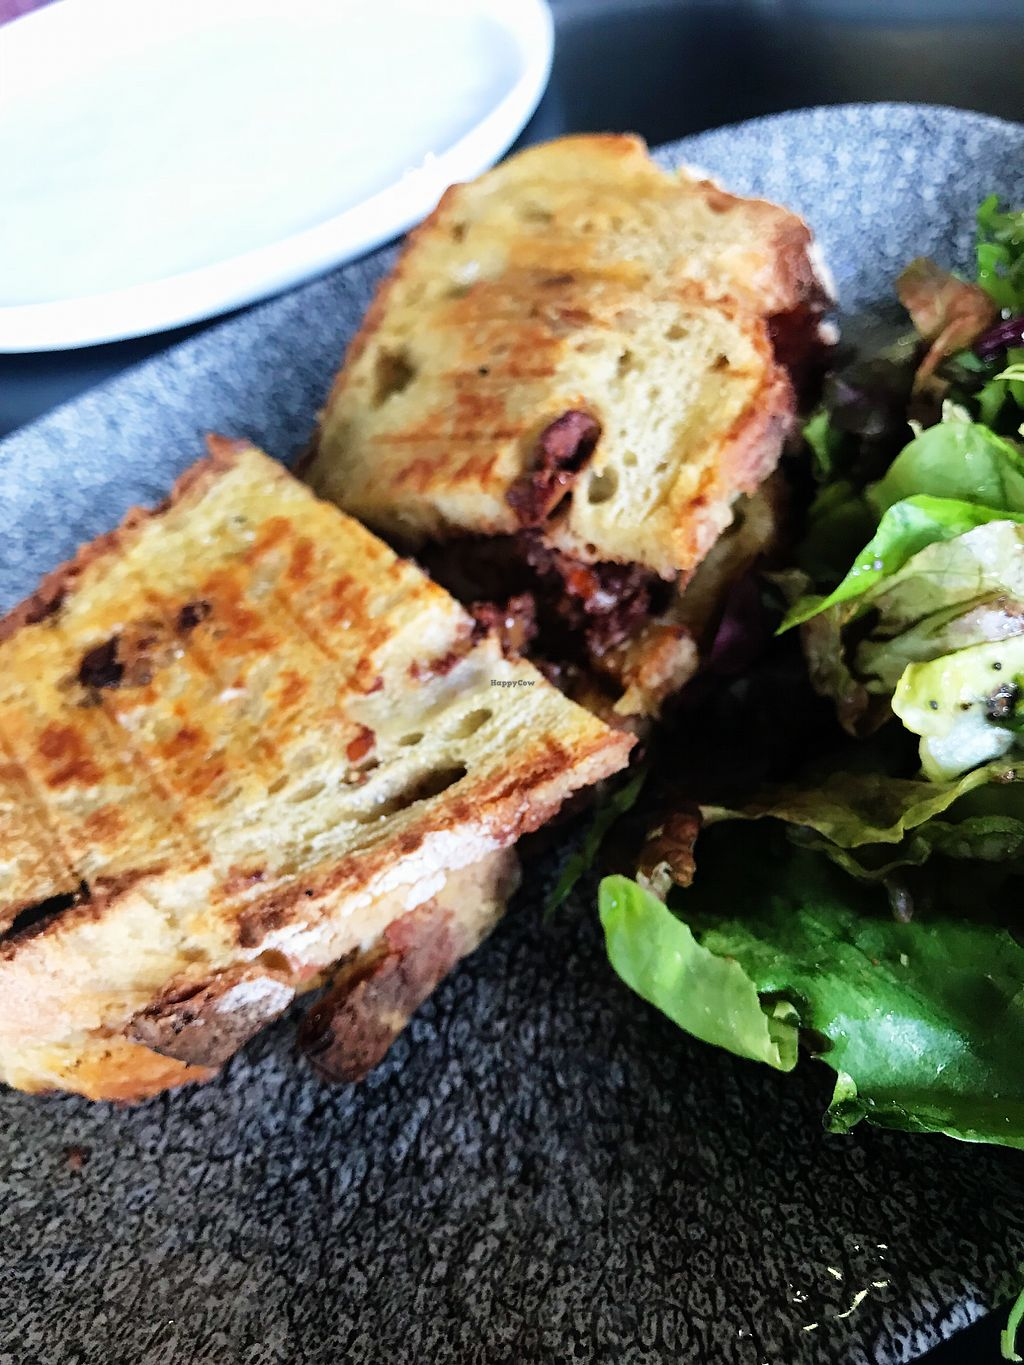 """Photo of Bi Nevi Deli  by <a href=""""/members/profile/veganoteacher"""">veganoteacher</a> <br/>Toast with Cashew Cheese <br/> March 31, 2018  - <a href='/contact/abuse/image/50484/378966'>Report</a>"""